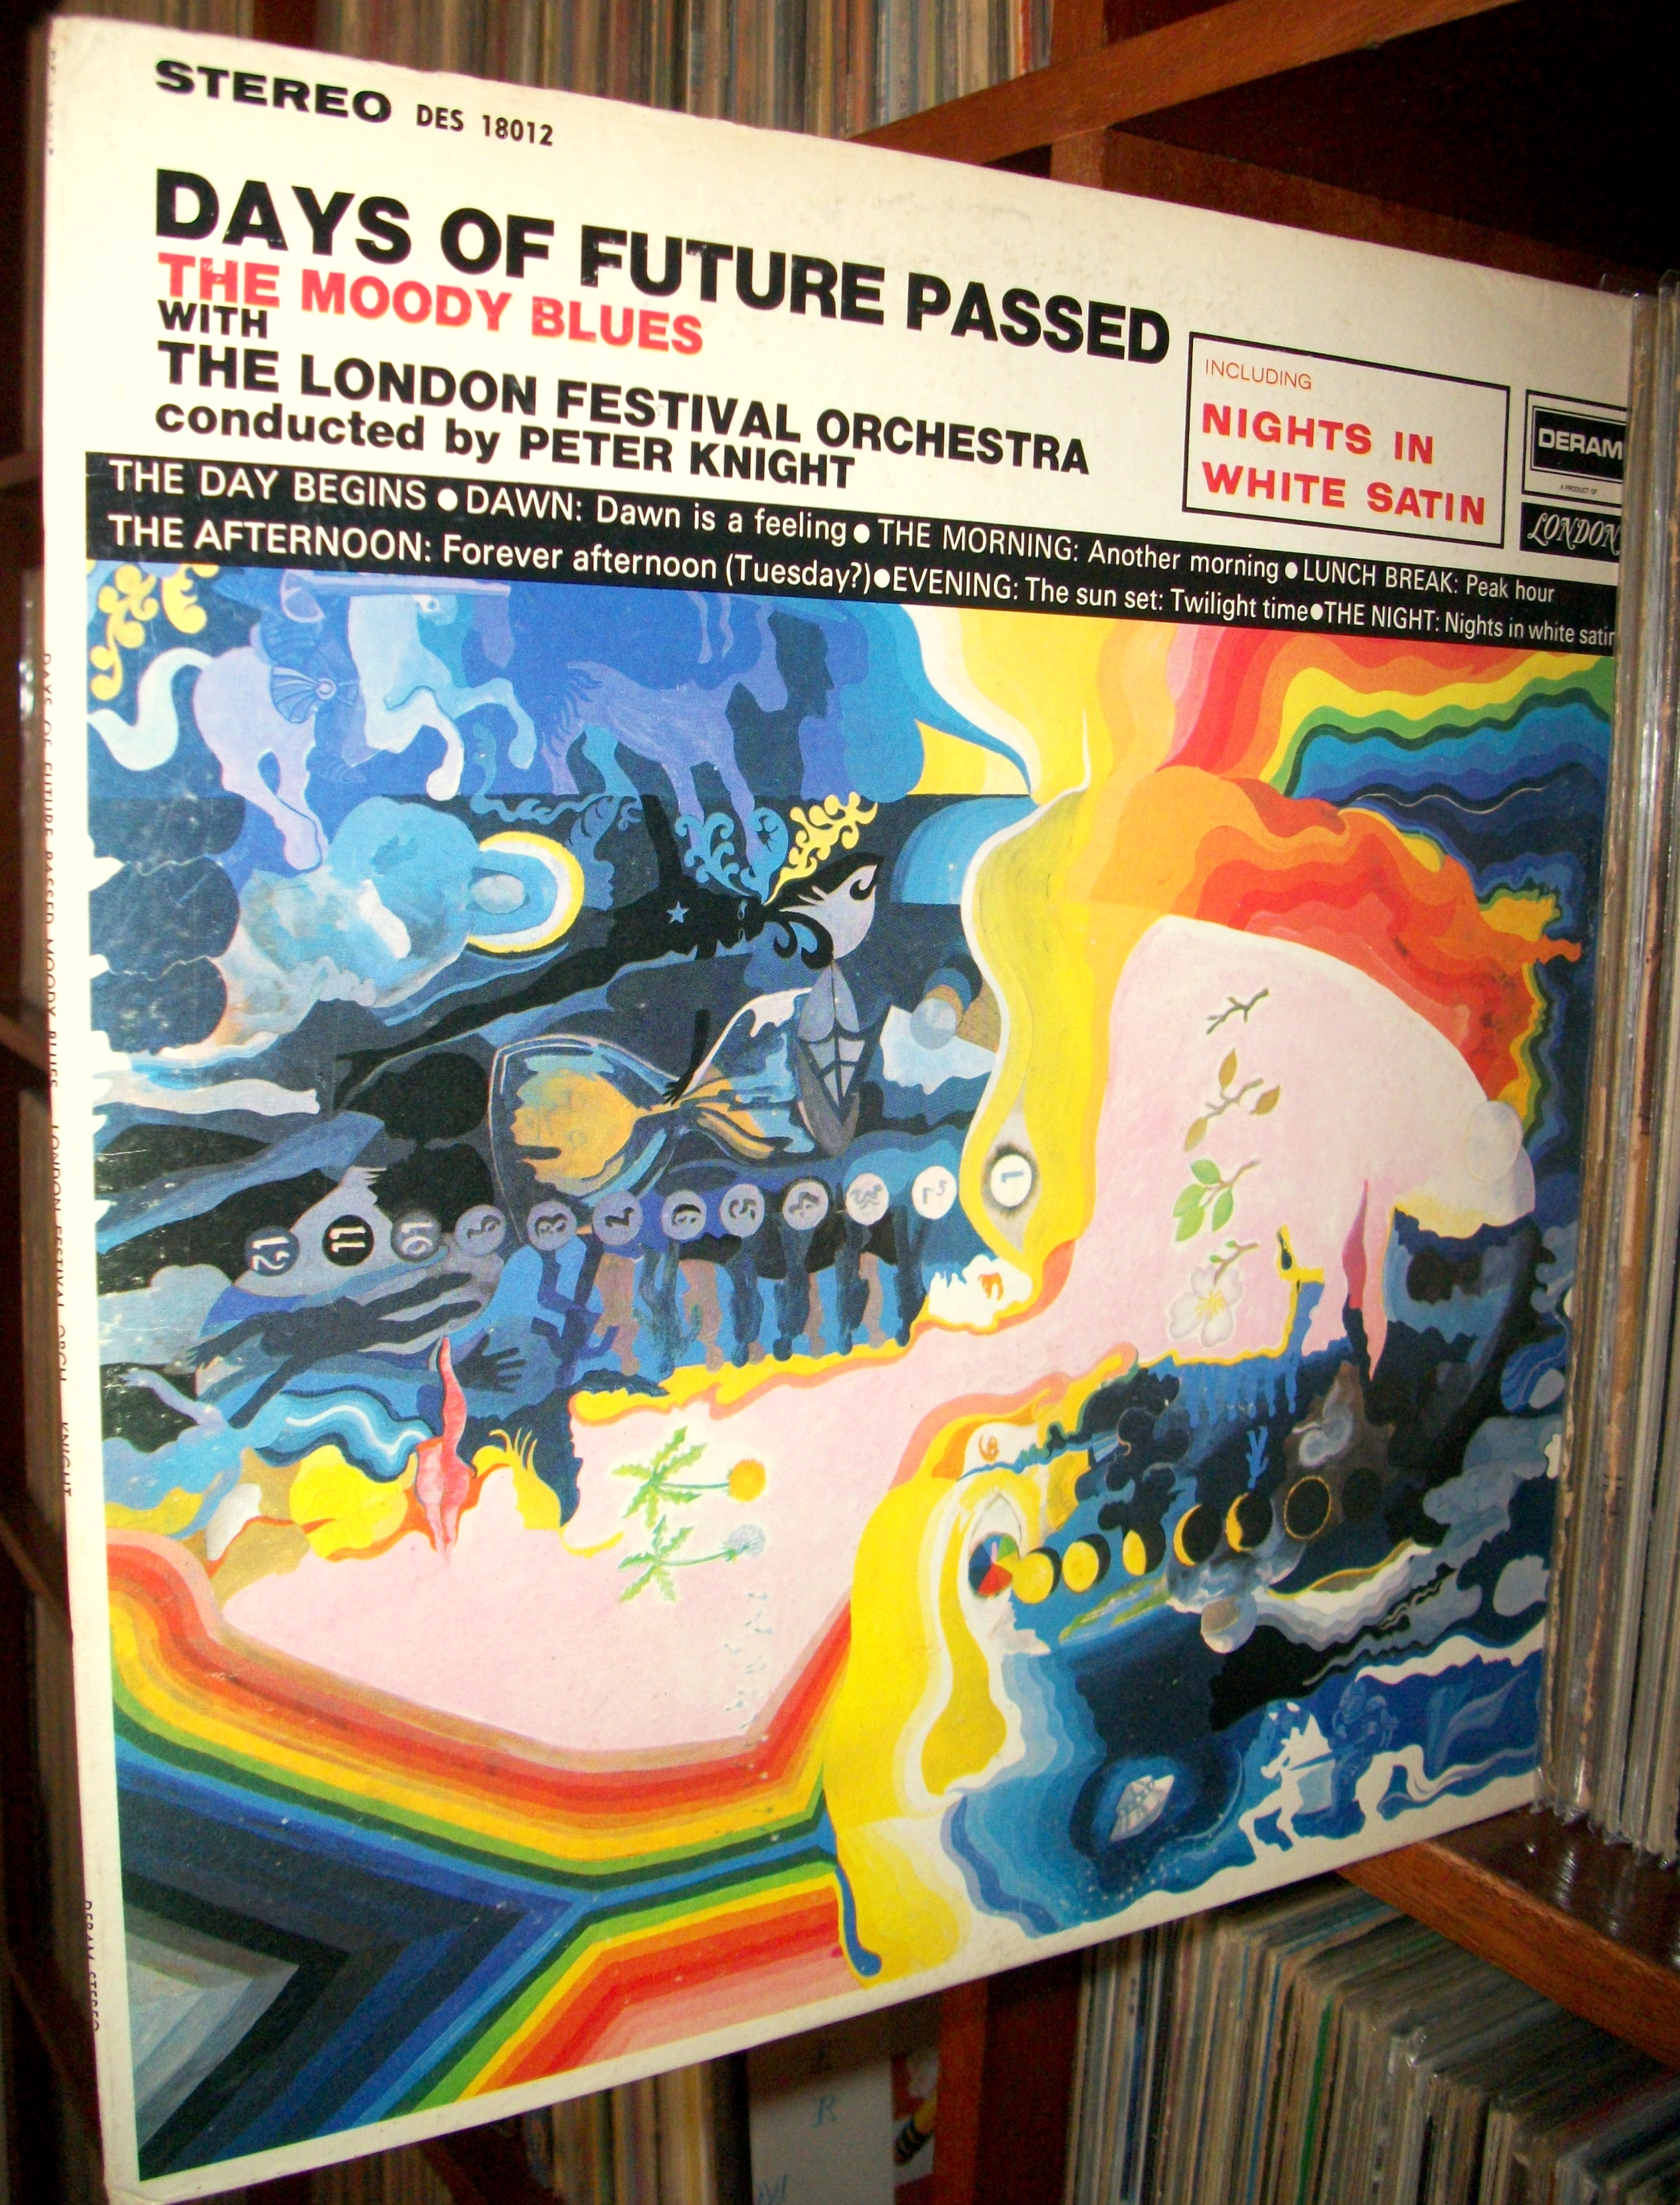 SINISTER VINYL COLLECTION: THE MOODY BLUES – DAYS OF FUTURE PASSED